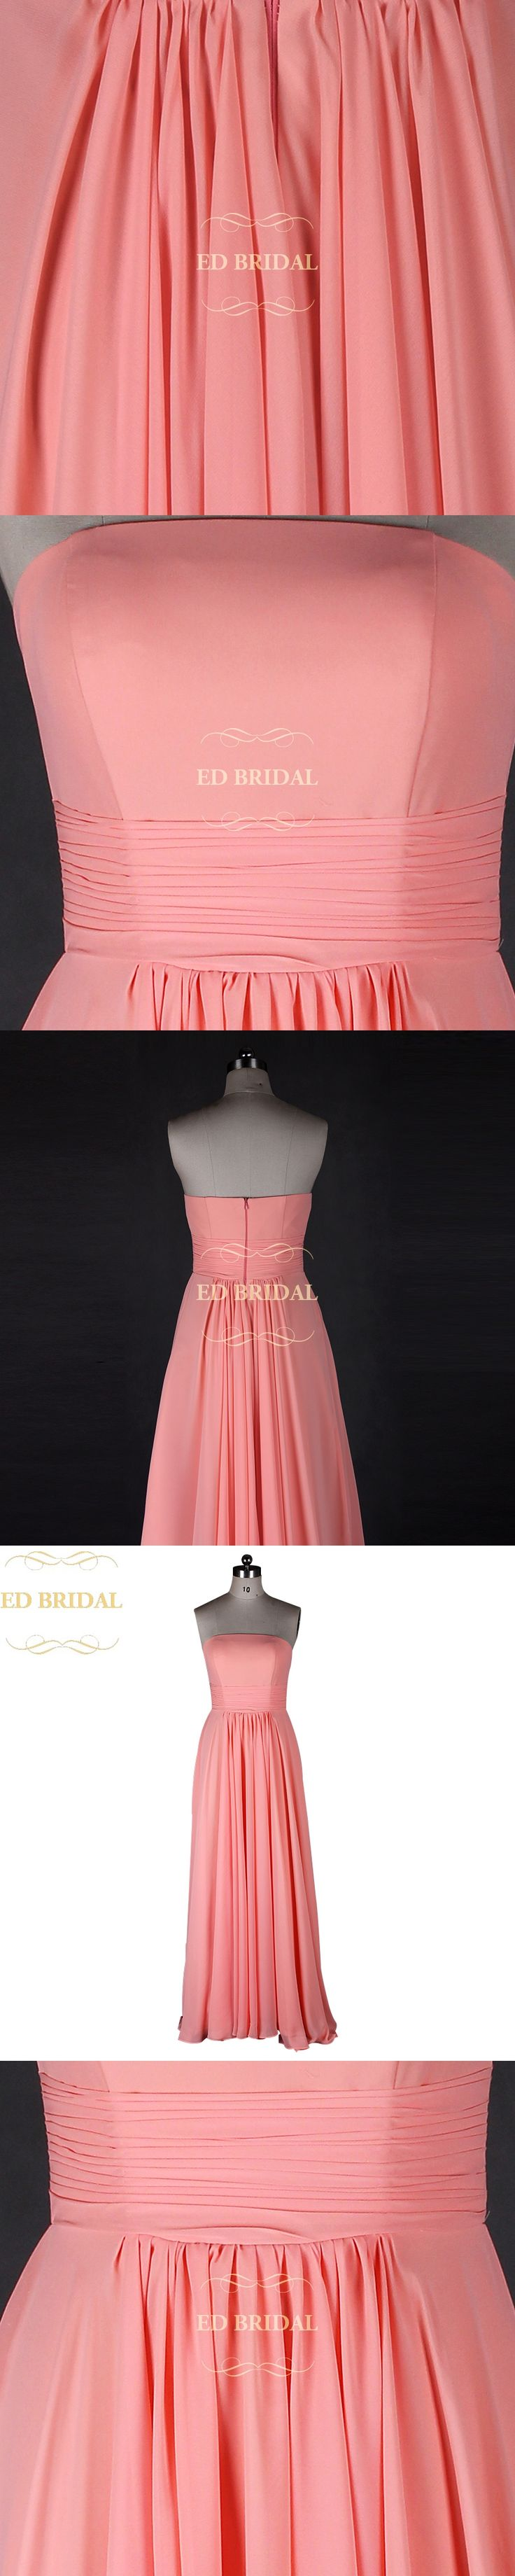 Strapless Long Coral Bridesmaid Dress Chiffon Women Special Occasion Formal Party Gown robe demoiselle d'honneur